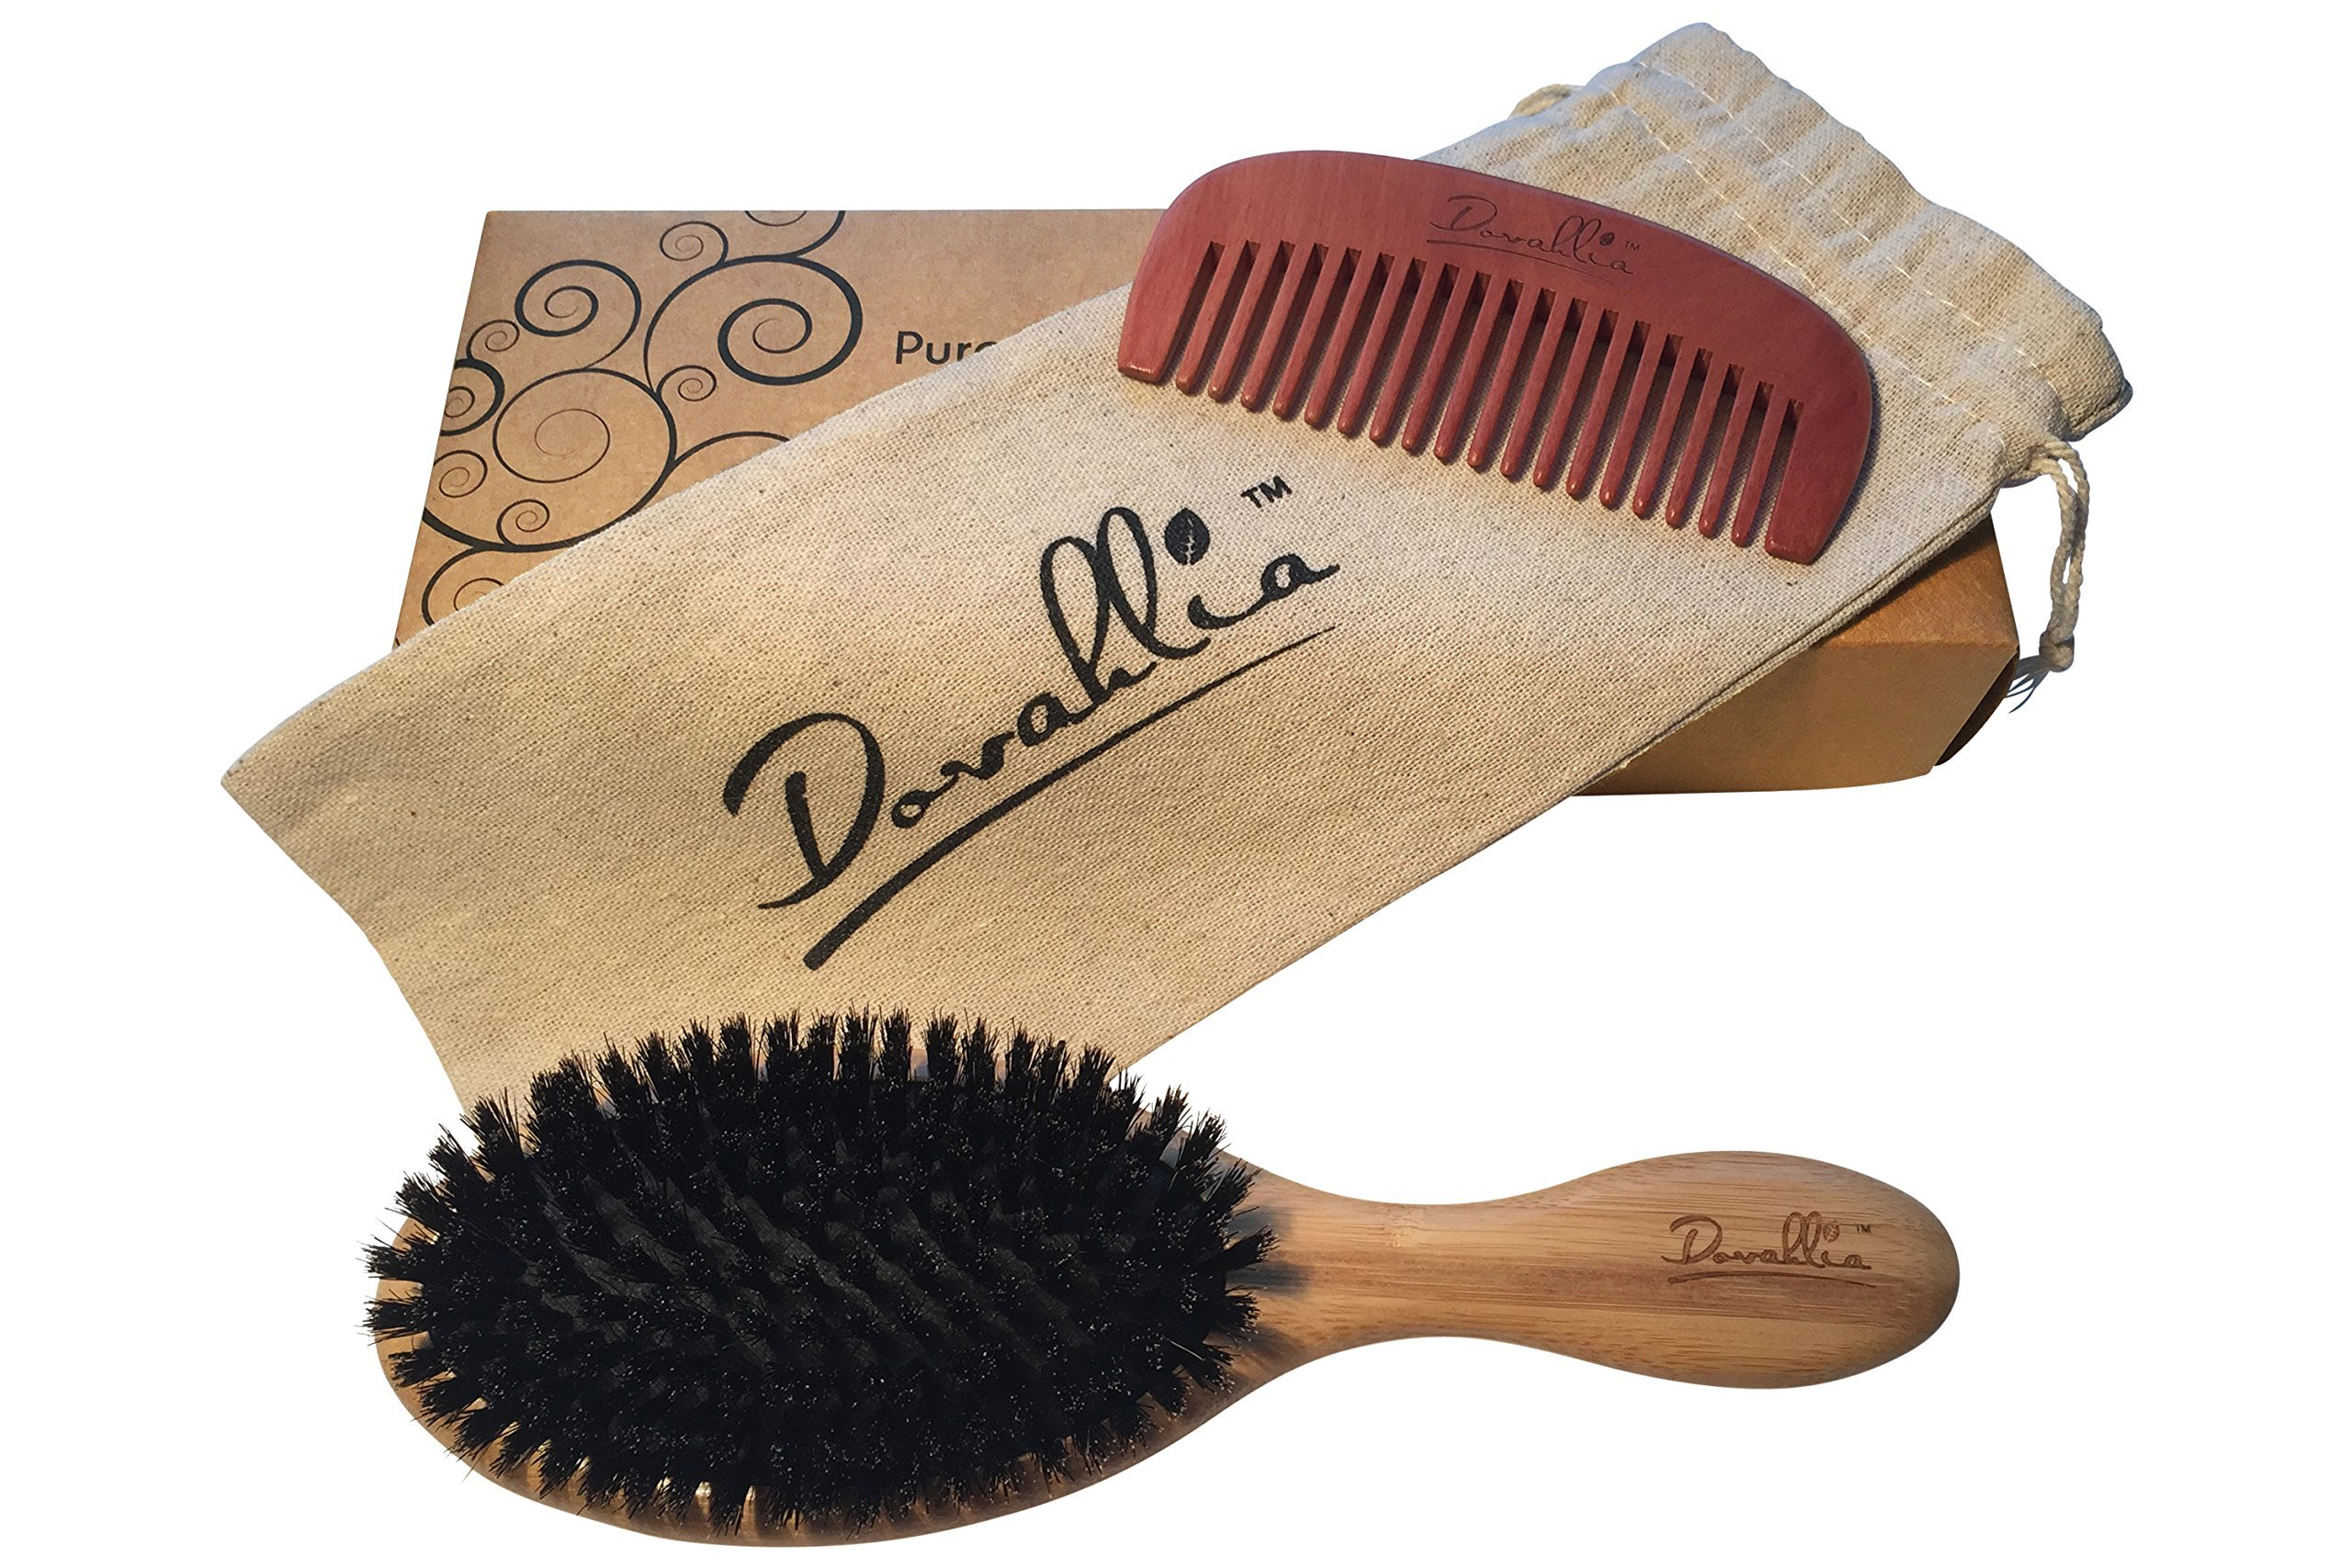 Boar Bristle Hair Brush Set for Women and Men - Designed for Thin and Normal Hair - Adds Shine and Improves Hair Texture - Wood Comb and Gift Bag Included (black) by Dovahlia (Image #4)